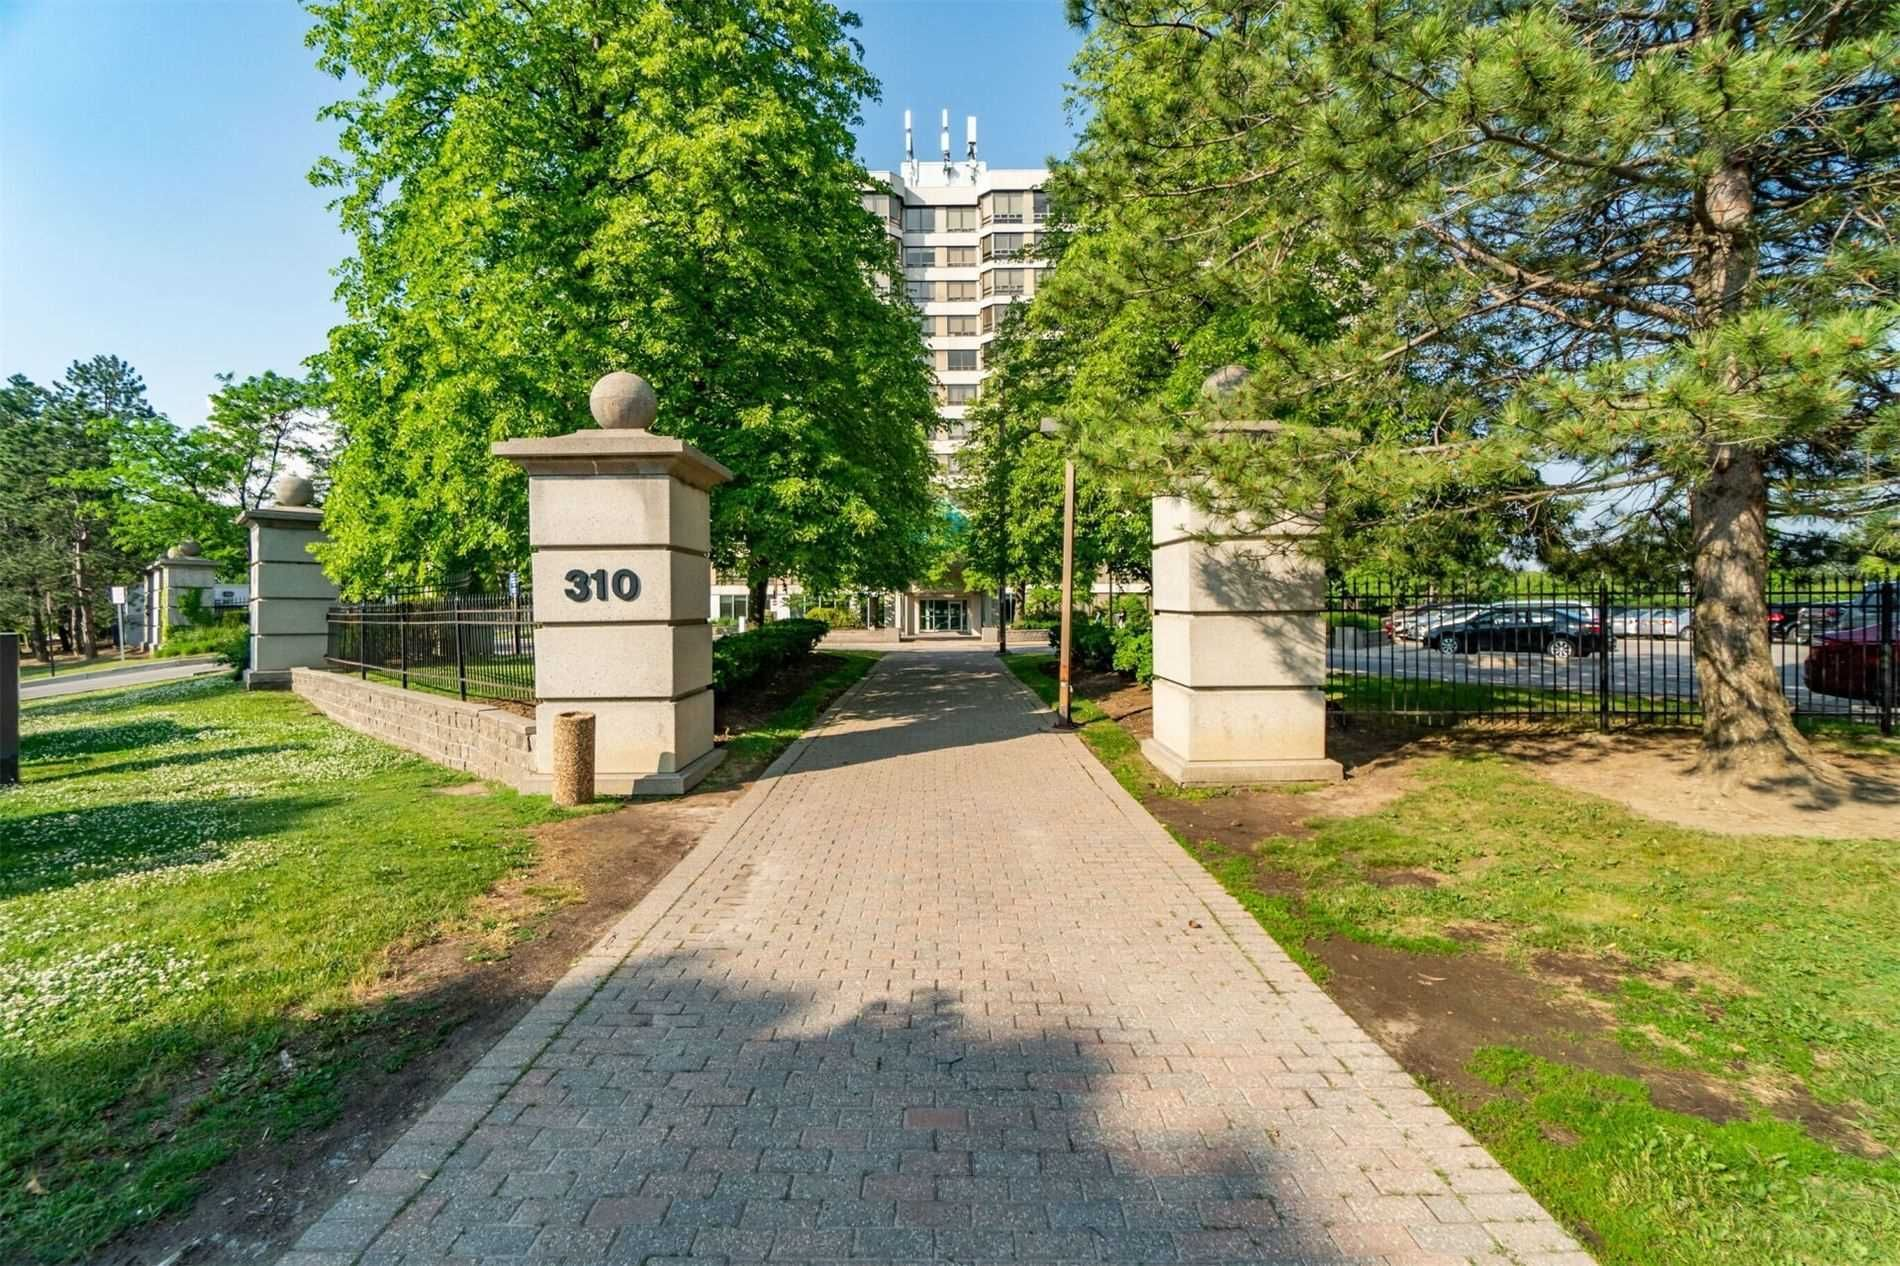 310 Mill St S, unit 706 for sale in Toronto - image #2